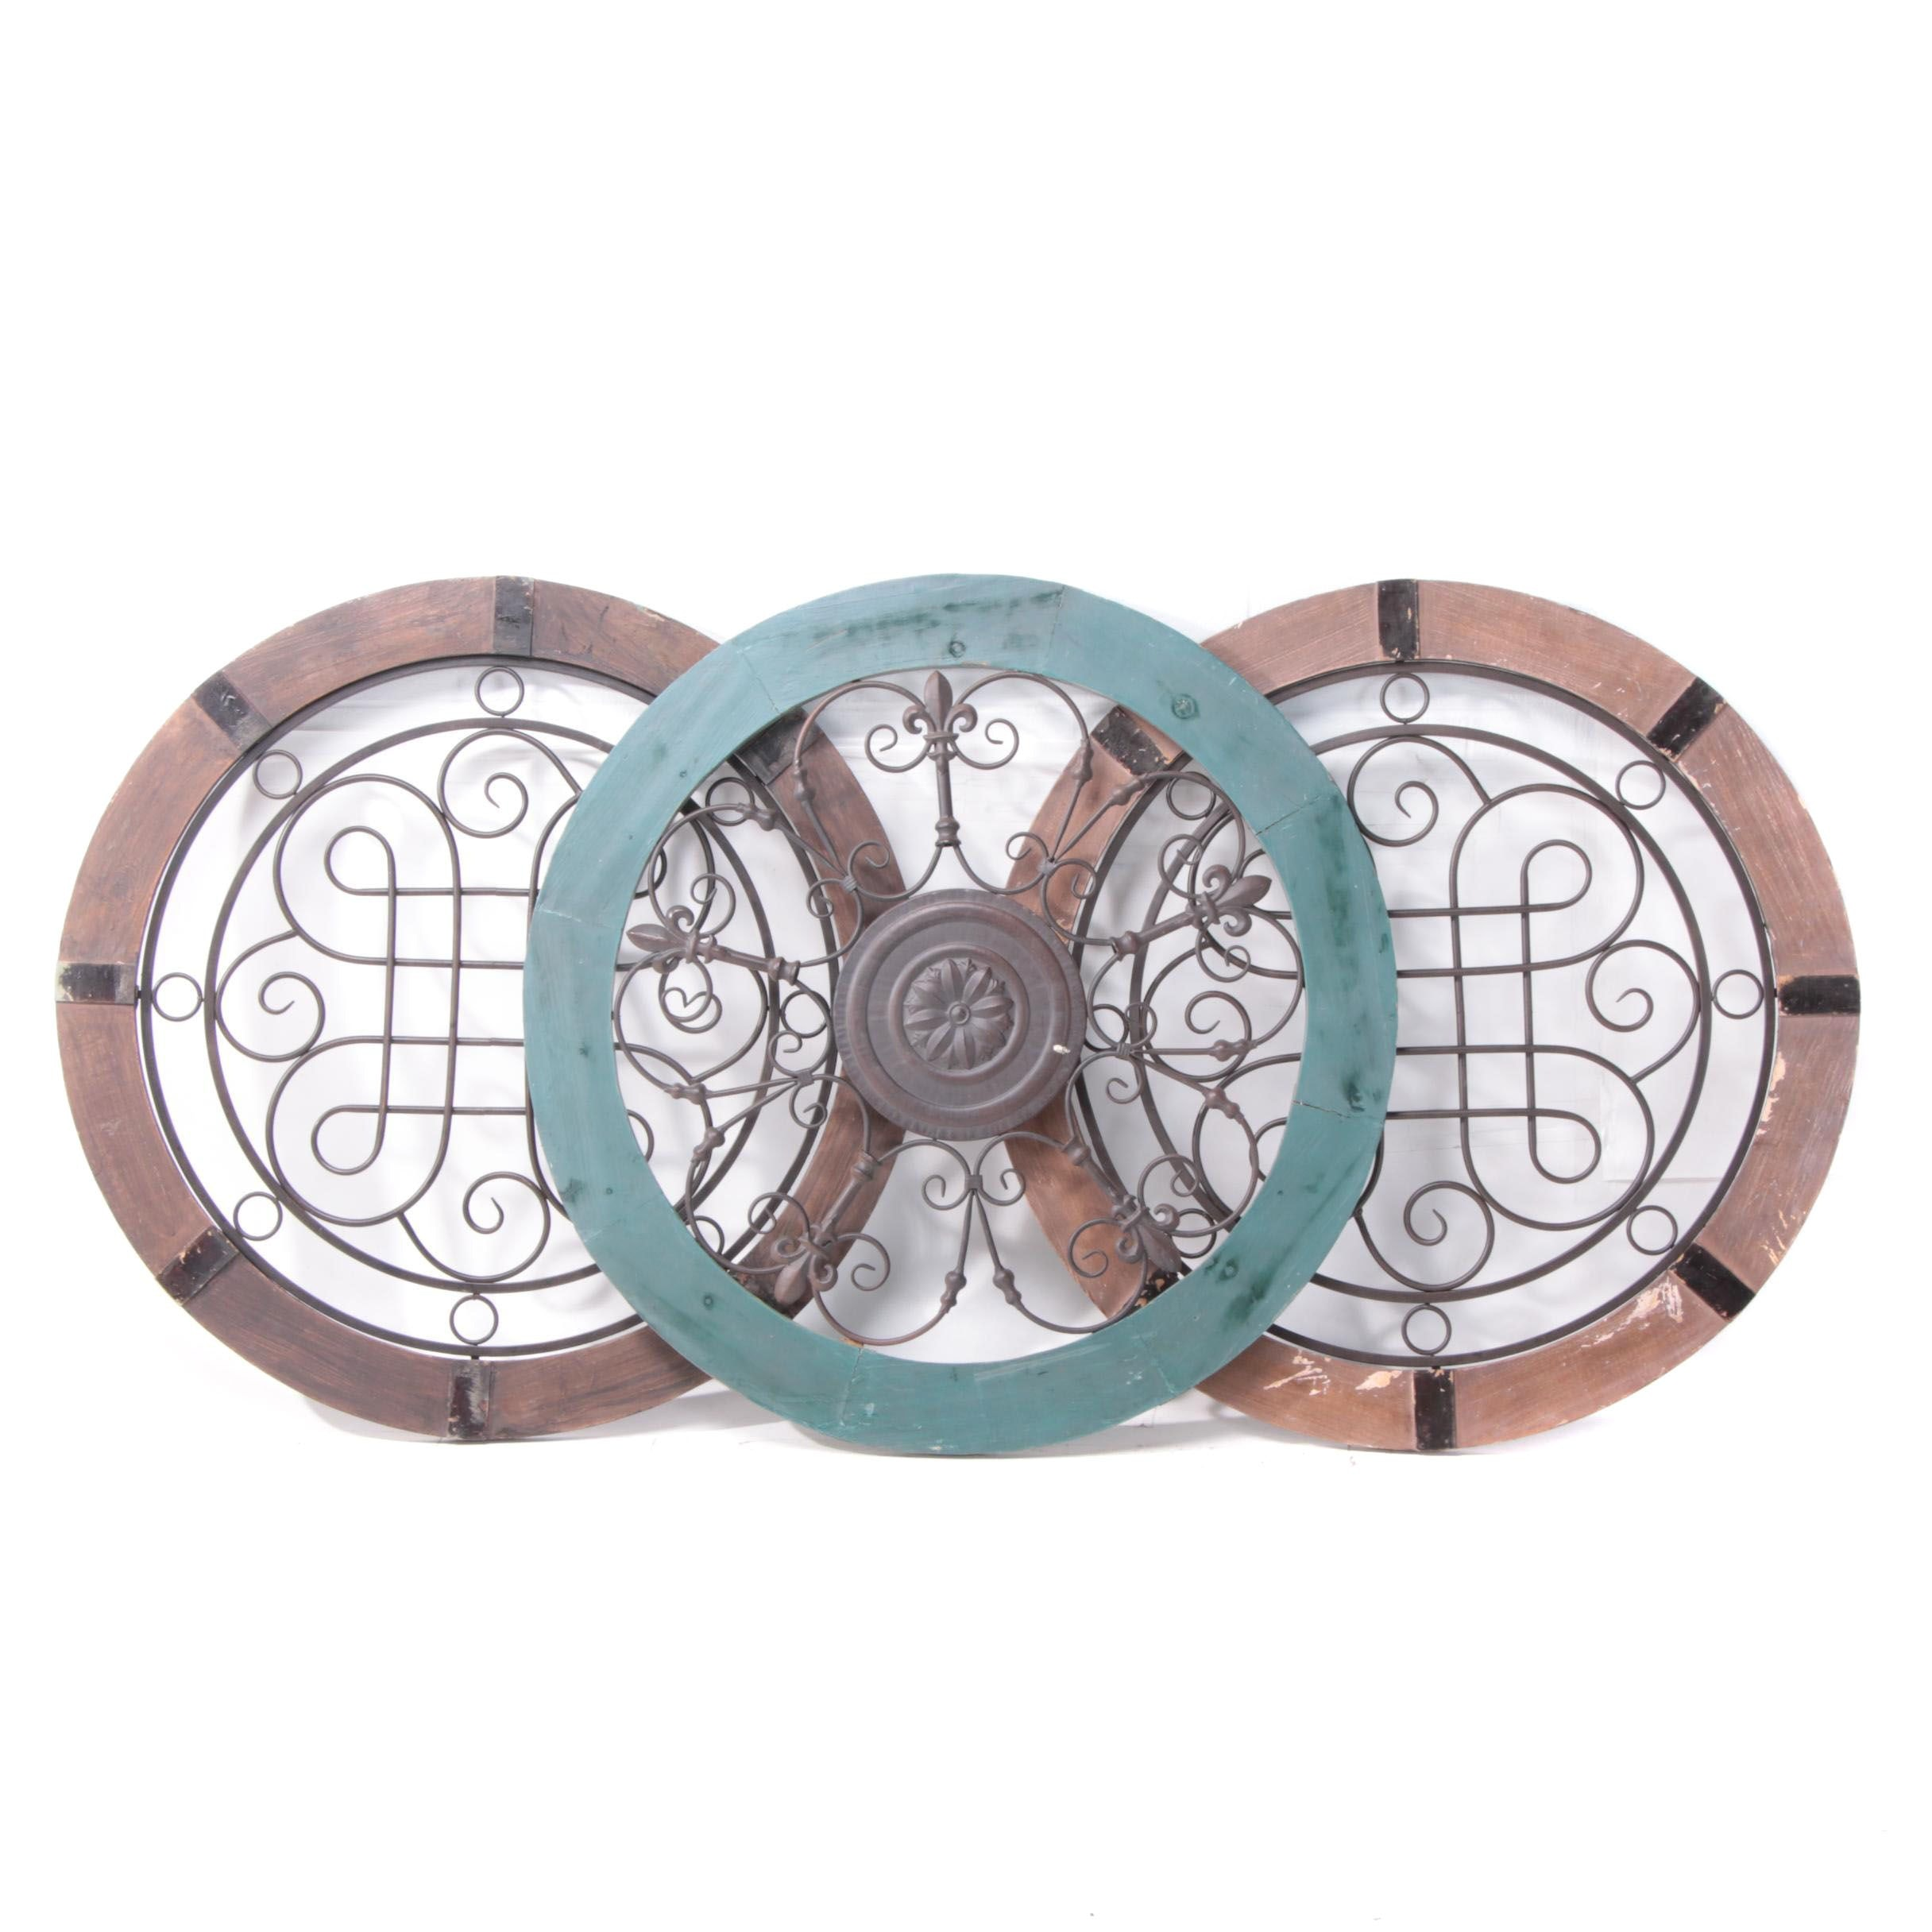 Provincial Style Wood and Metal Round Wall Medallions